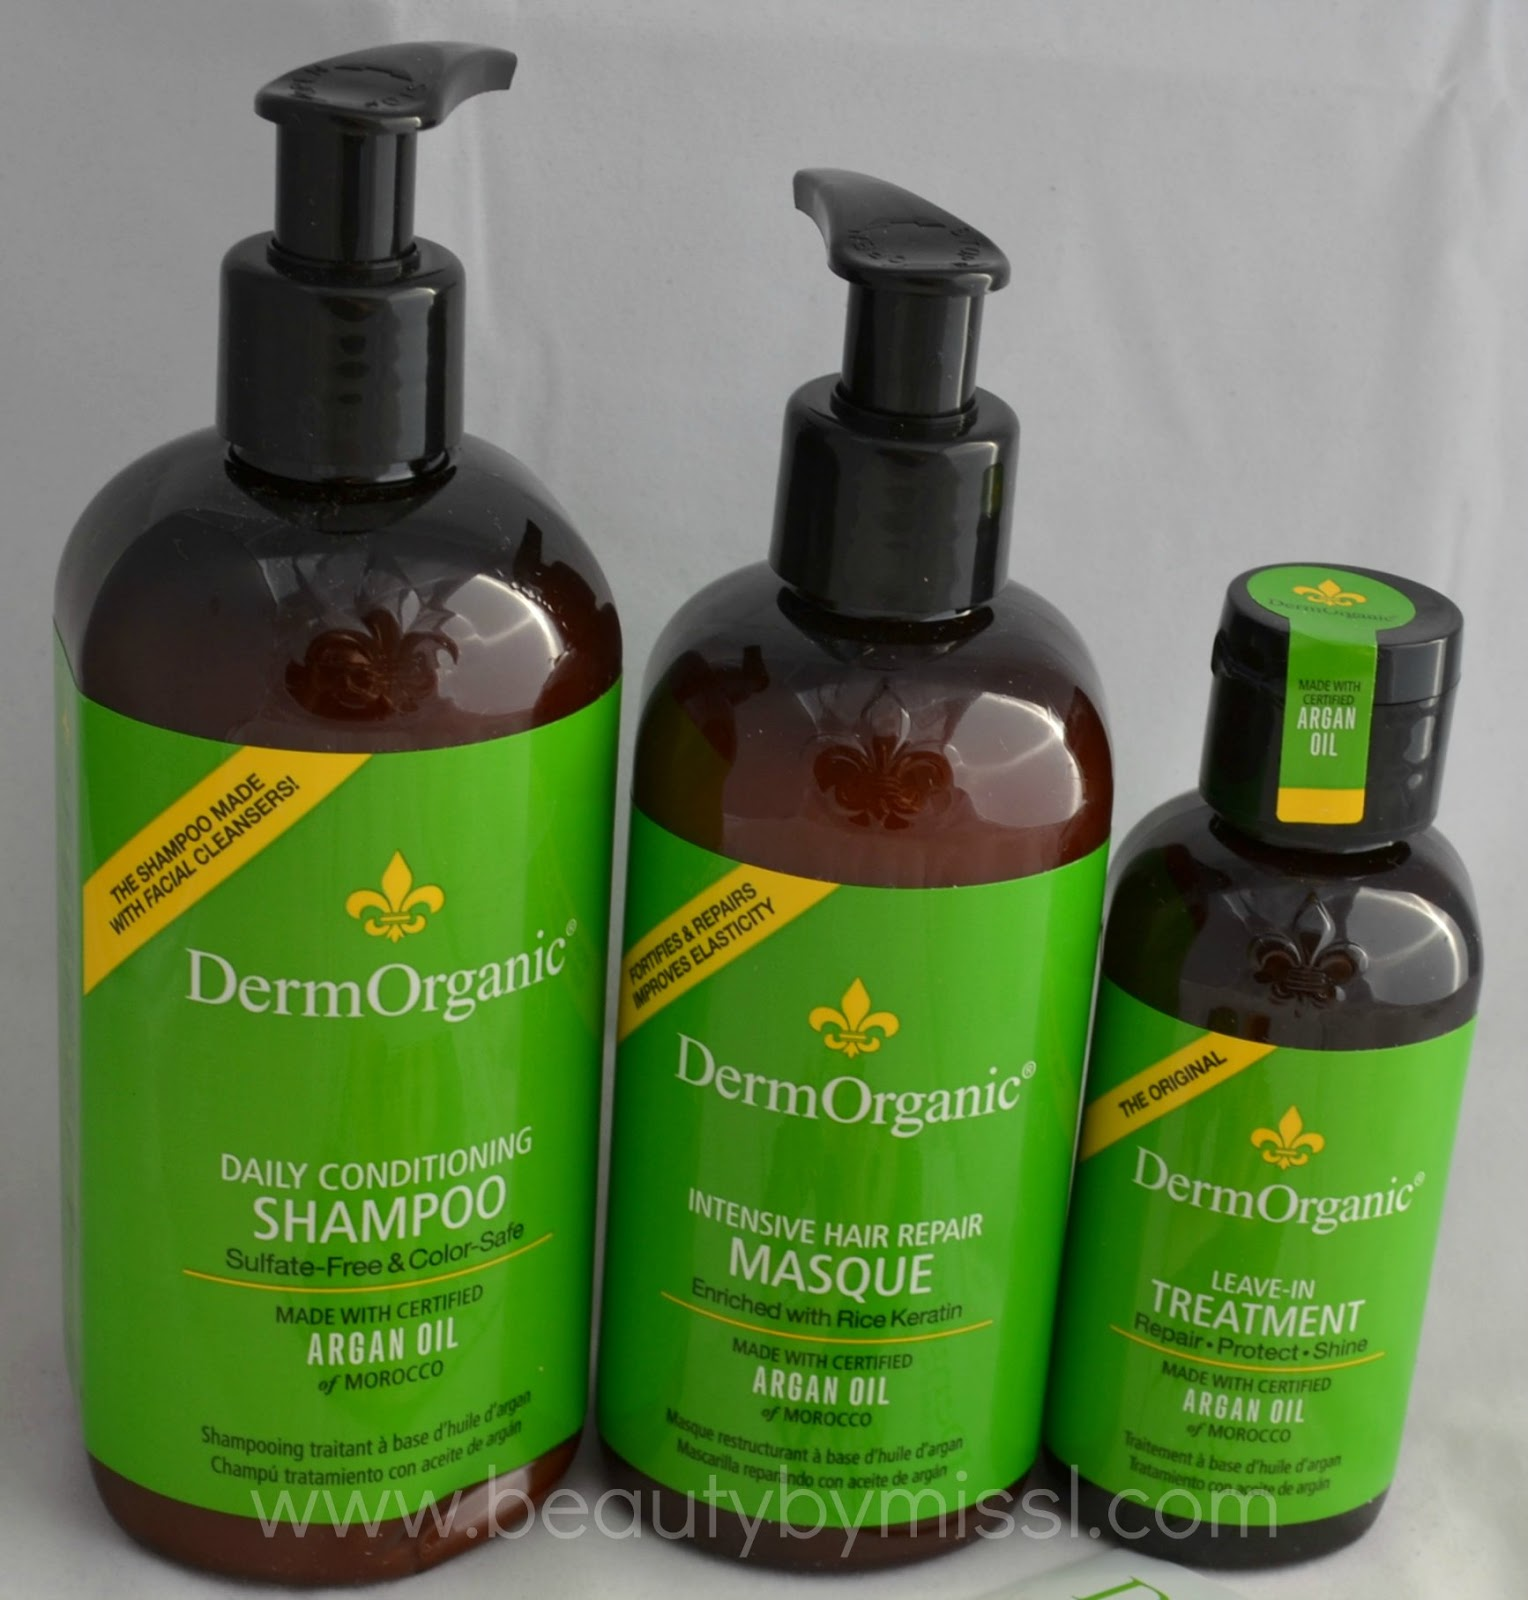 DermOrganic hair care